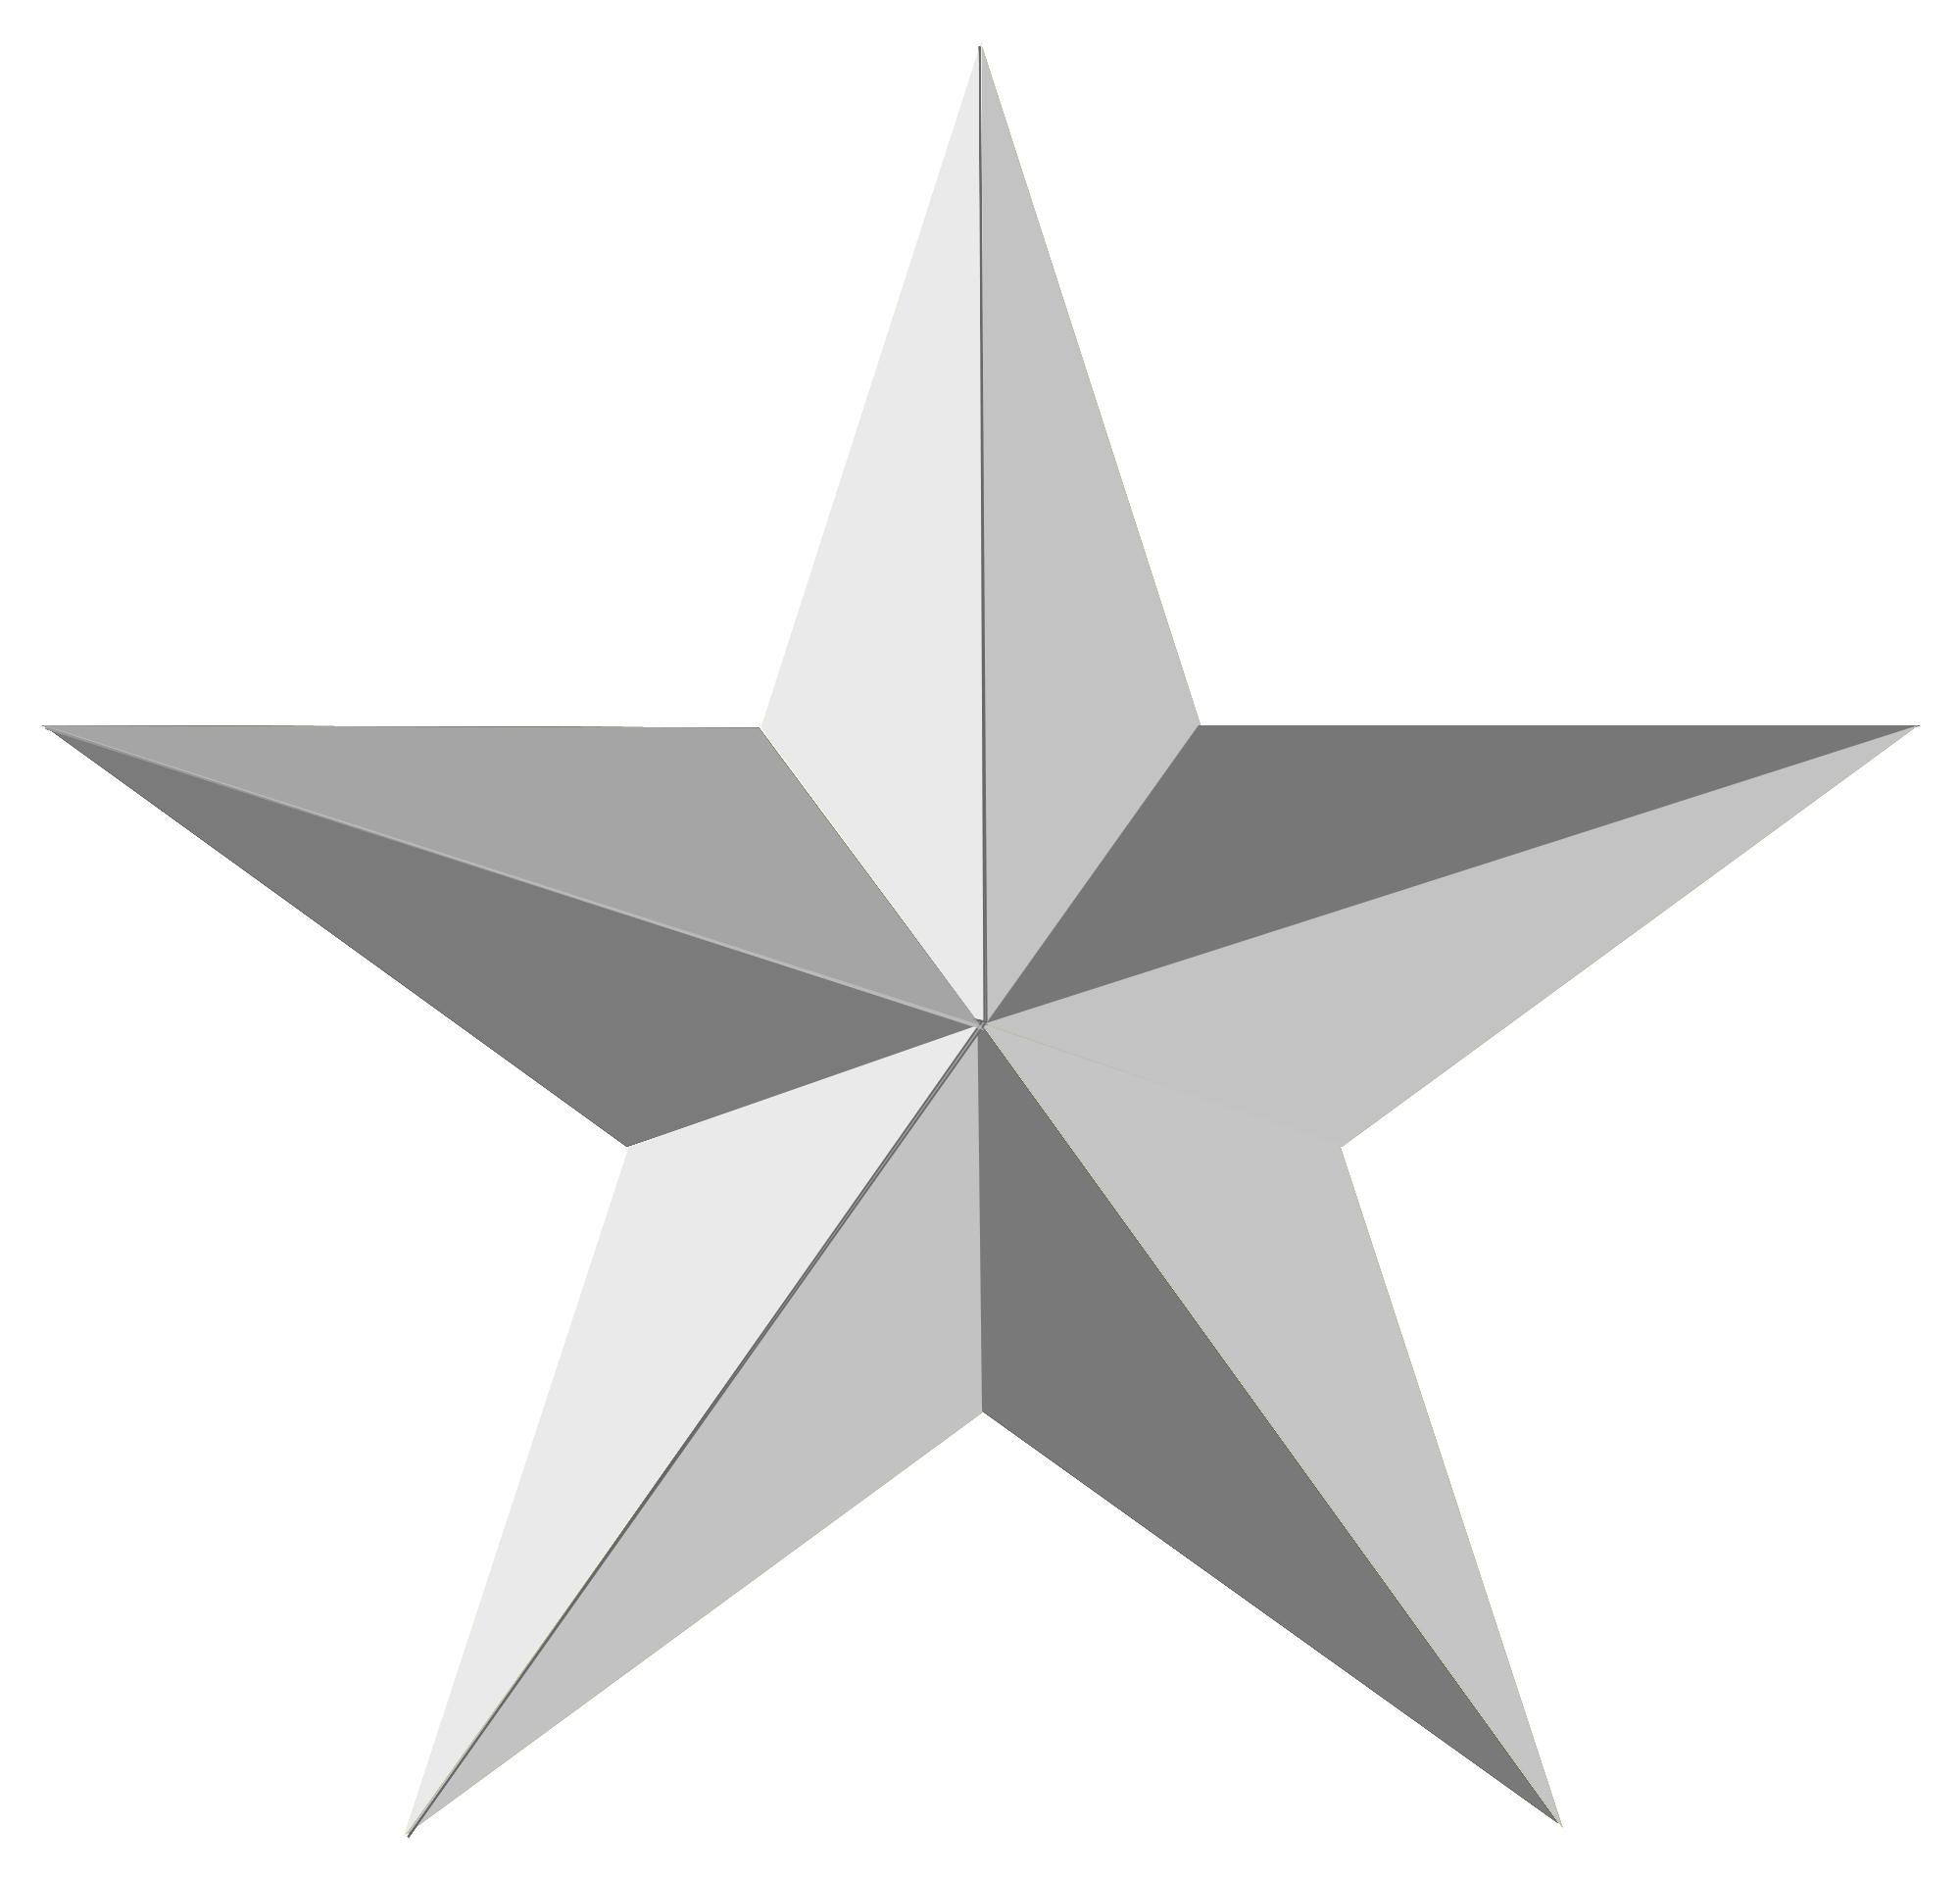 Star Png Image Free Picture Download Silver Stars Stars Star Light Star Bright